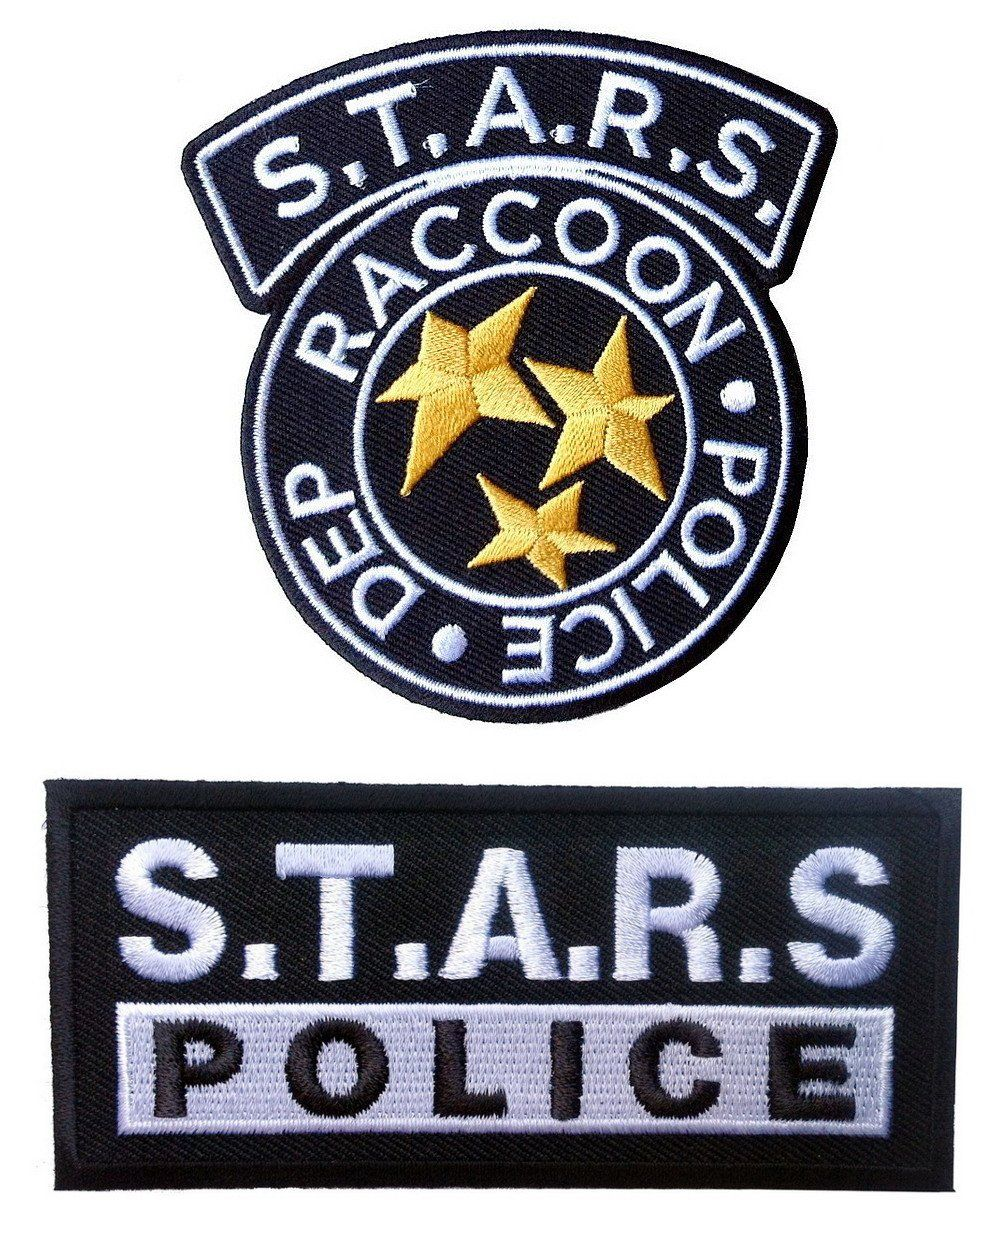 Set Of 2 Resident Evil S T A R S Raccoon Police Department Black Costume Patches Resident Evil Evil Patches